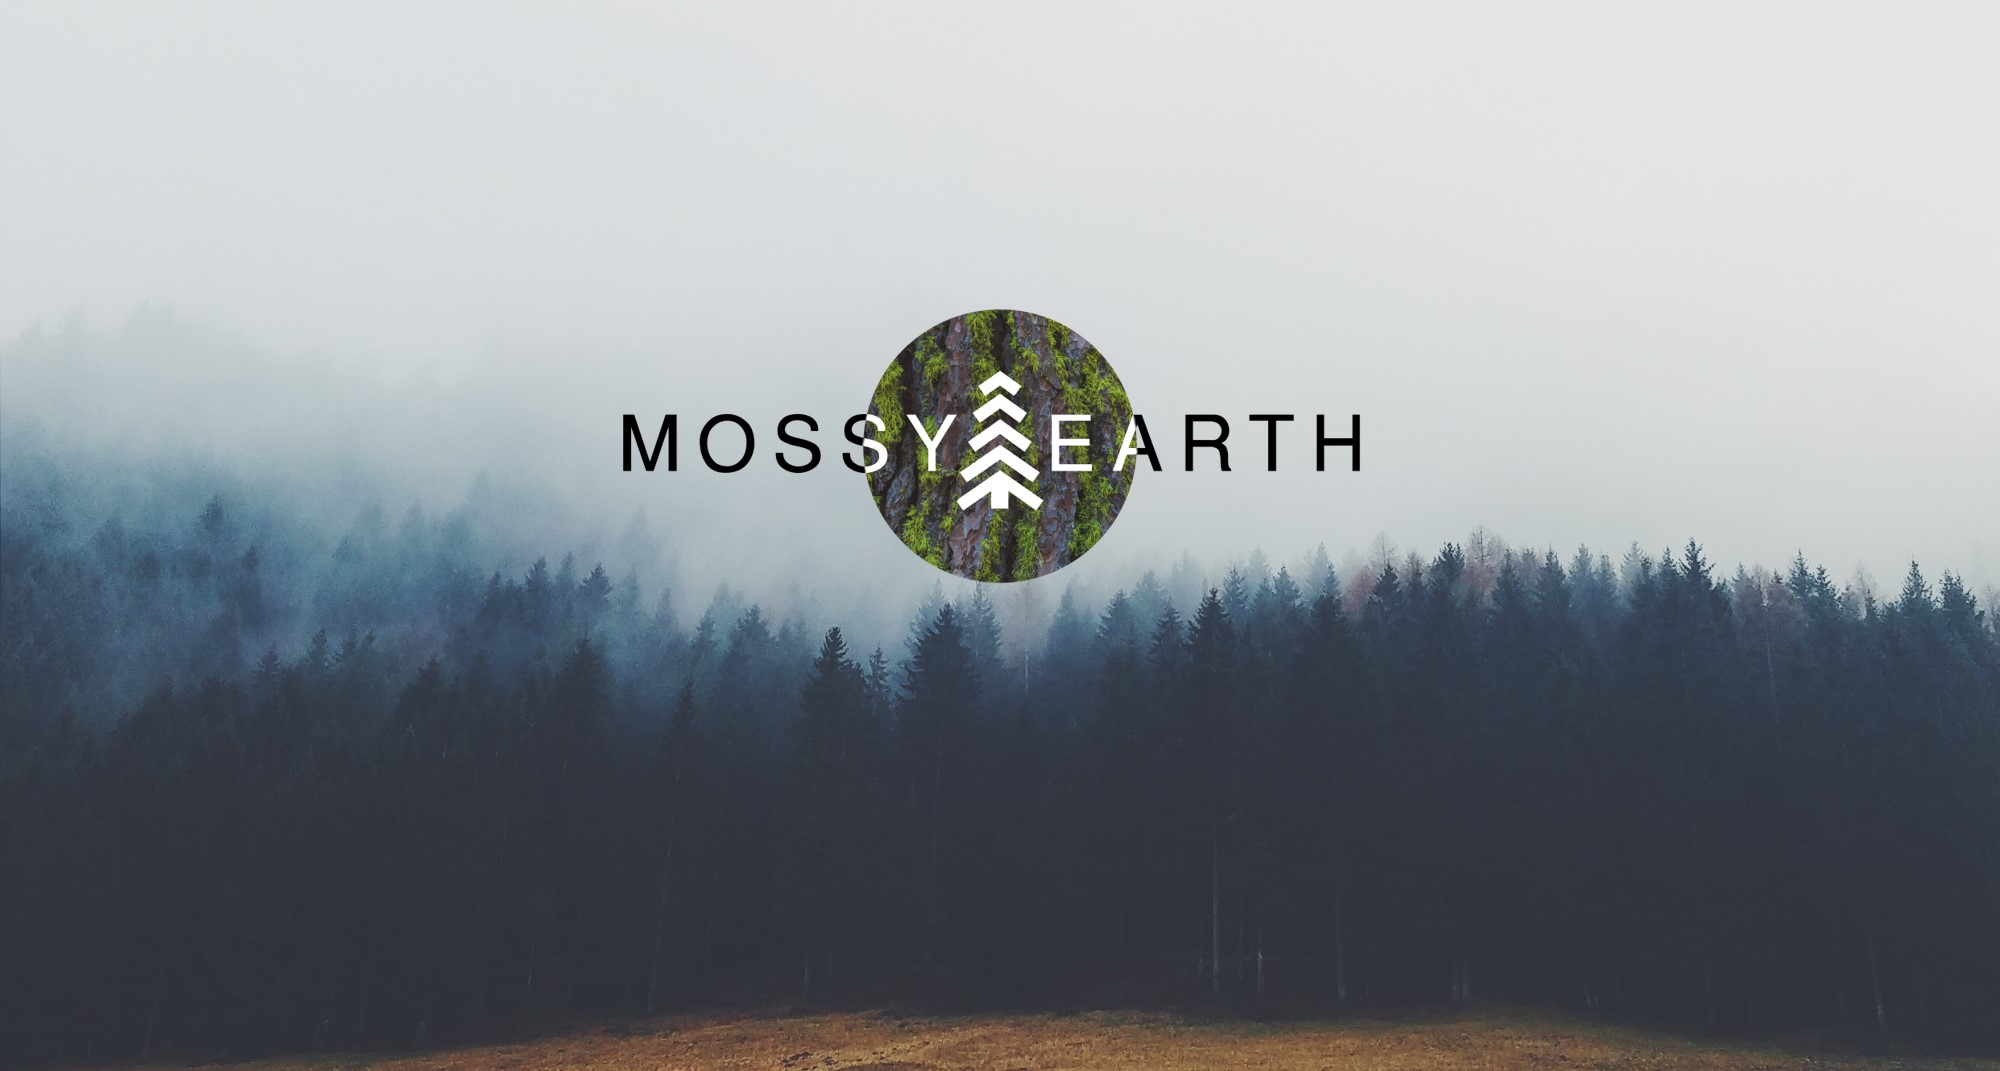 Mossy Earth